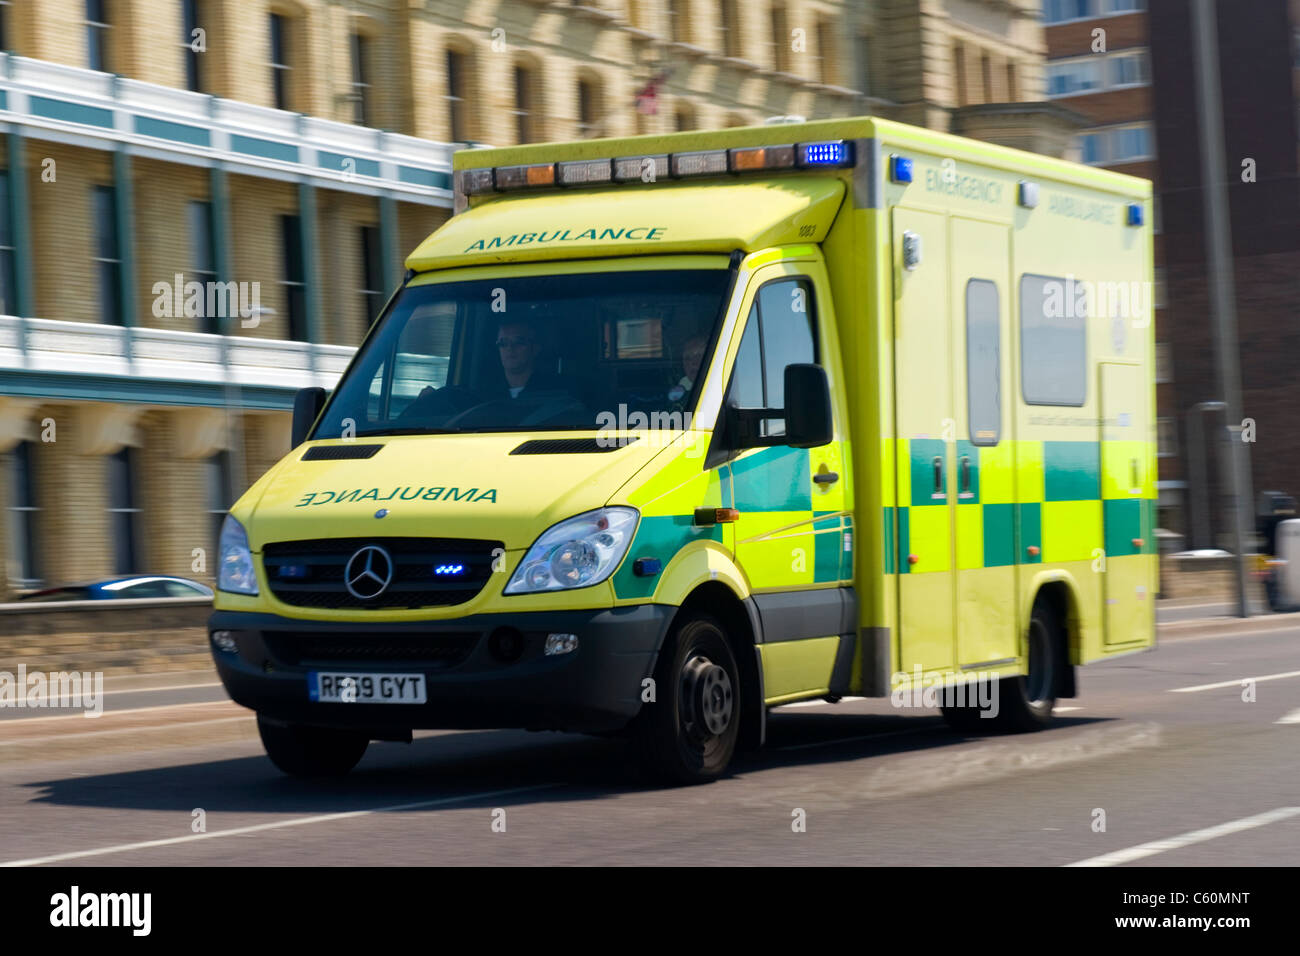 Hove actually East Sussex Mercedes Benz Sprinter 519 CDI ambulance or emergency services vehicle on call with lights - Stock Image